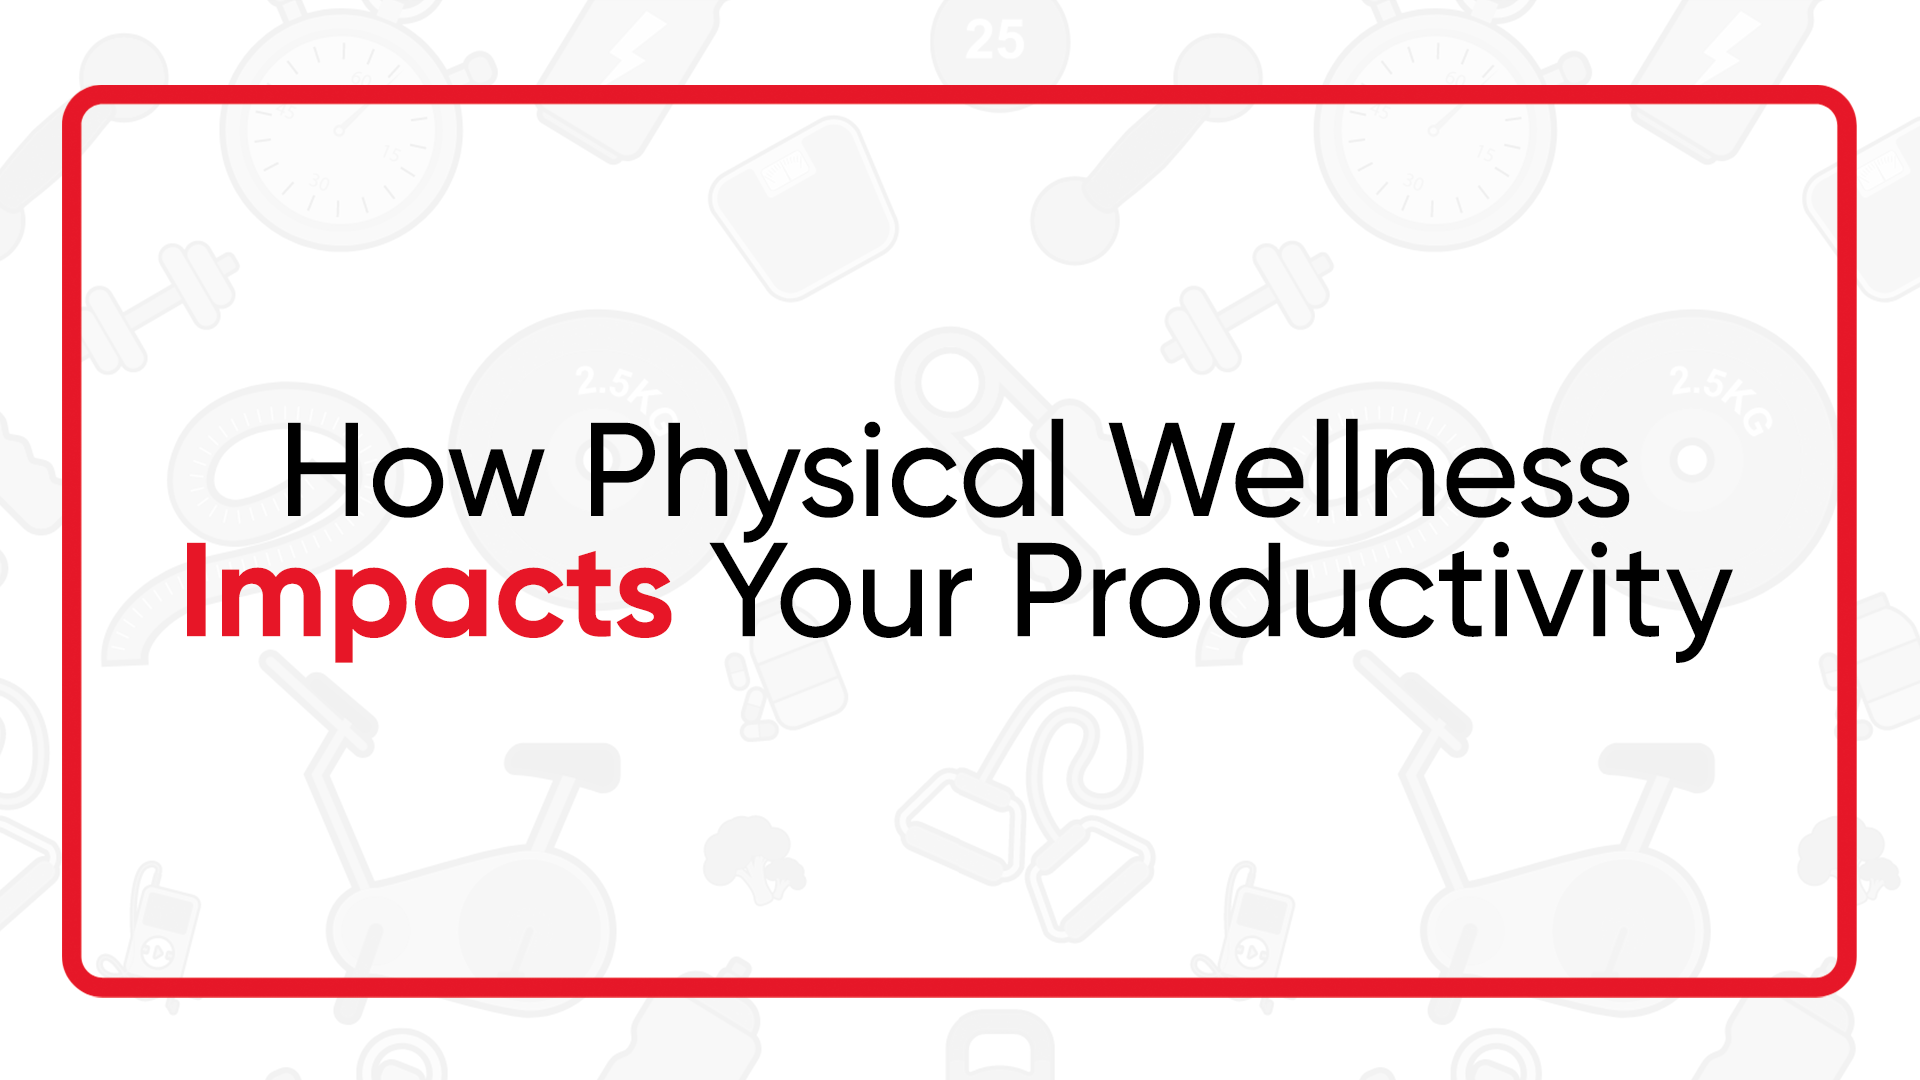 physical wellness, health and wellness, physical activity, activity workplace, staying active, avoid stress, workplace productivity, physical wellness productivity